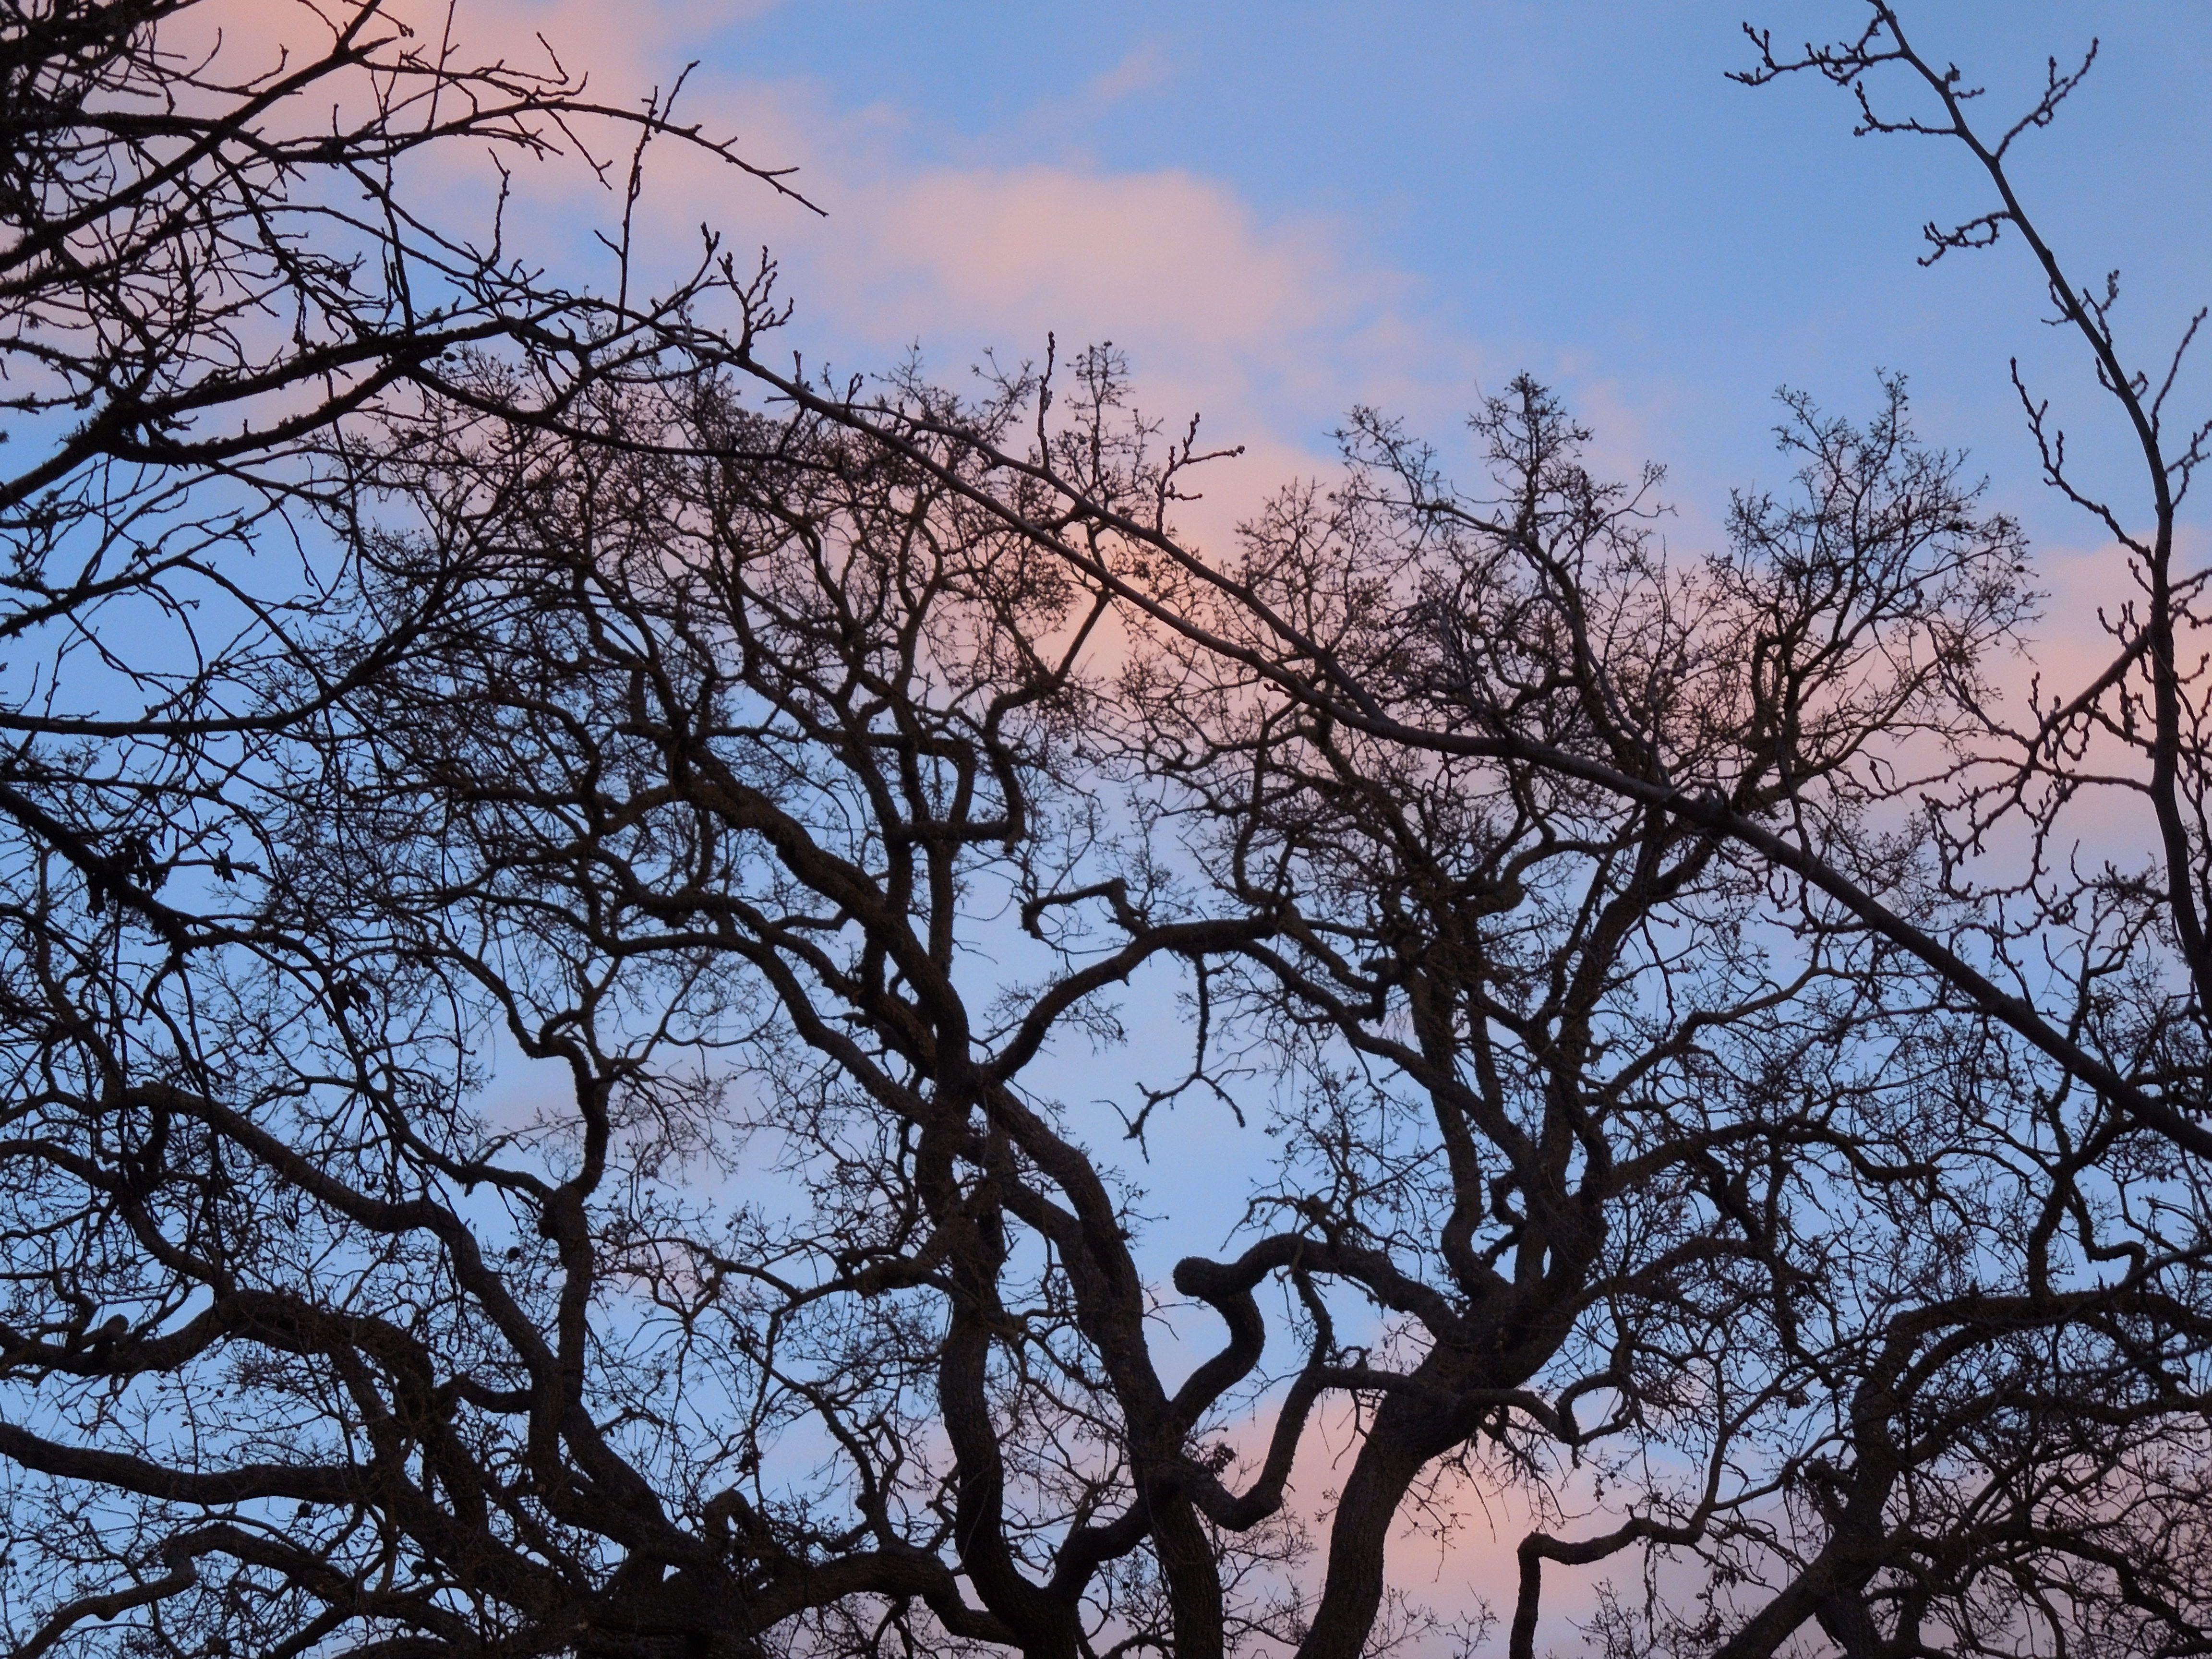 Treetop Silhouettes in Pink and Blue Sky in January